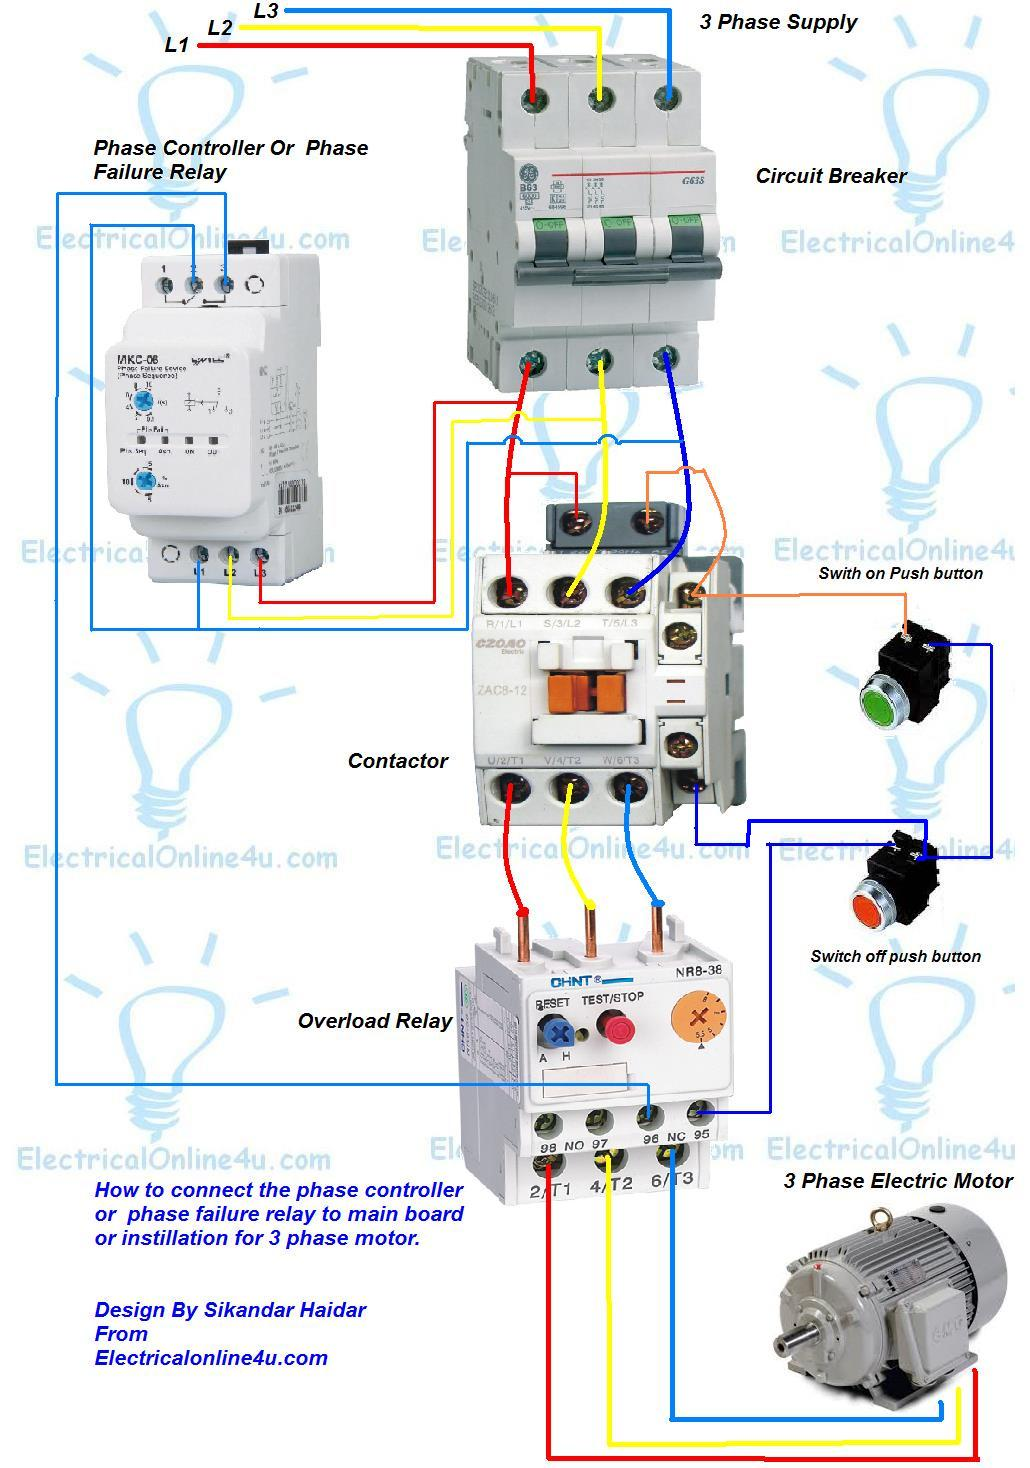 Control And Relay Panel Wiring Diagram : Phase controller wiring failure relay diagram